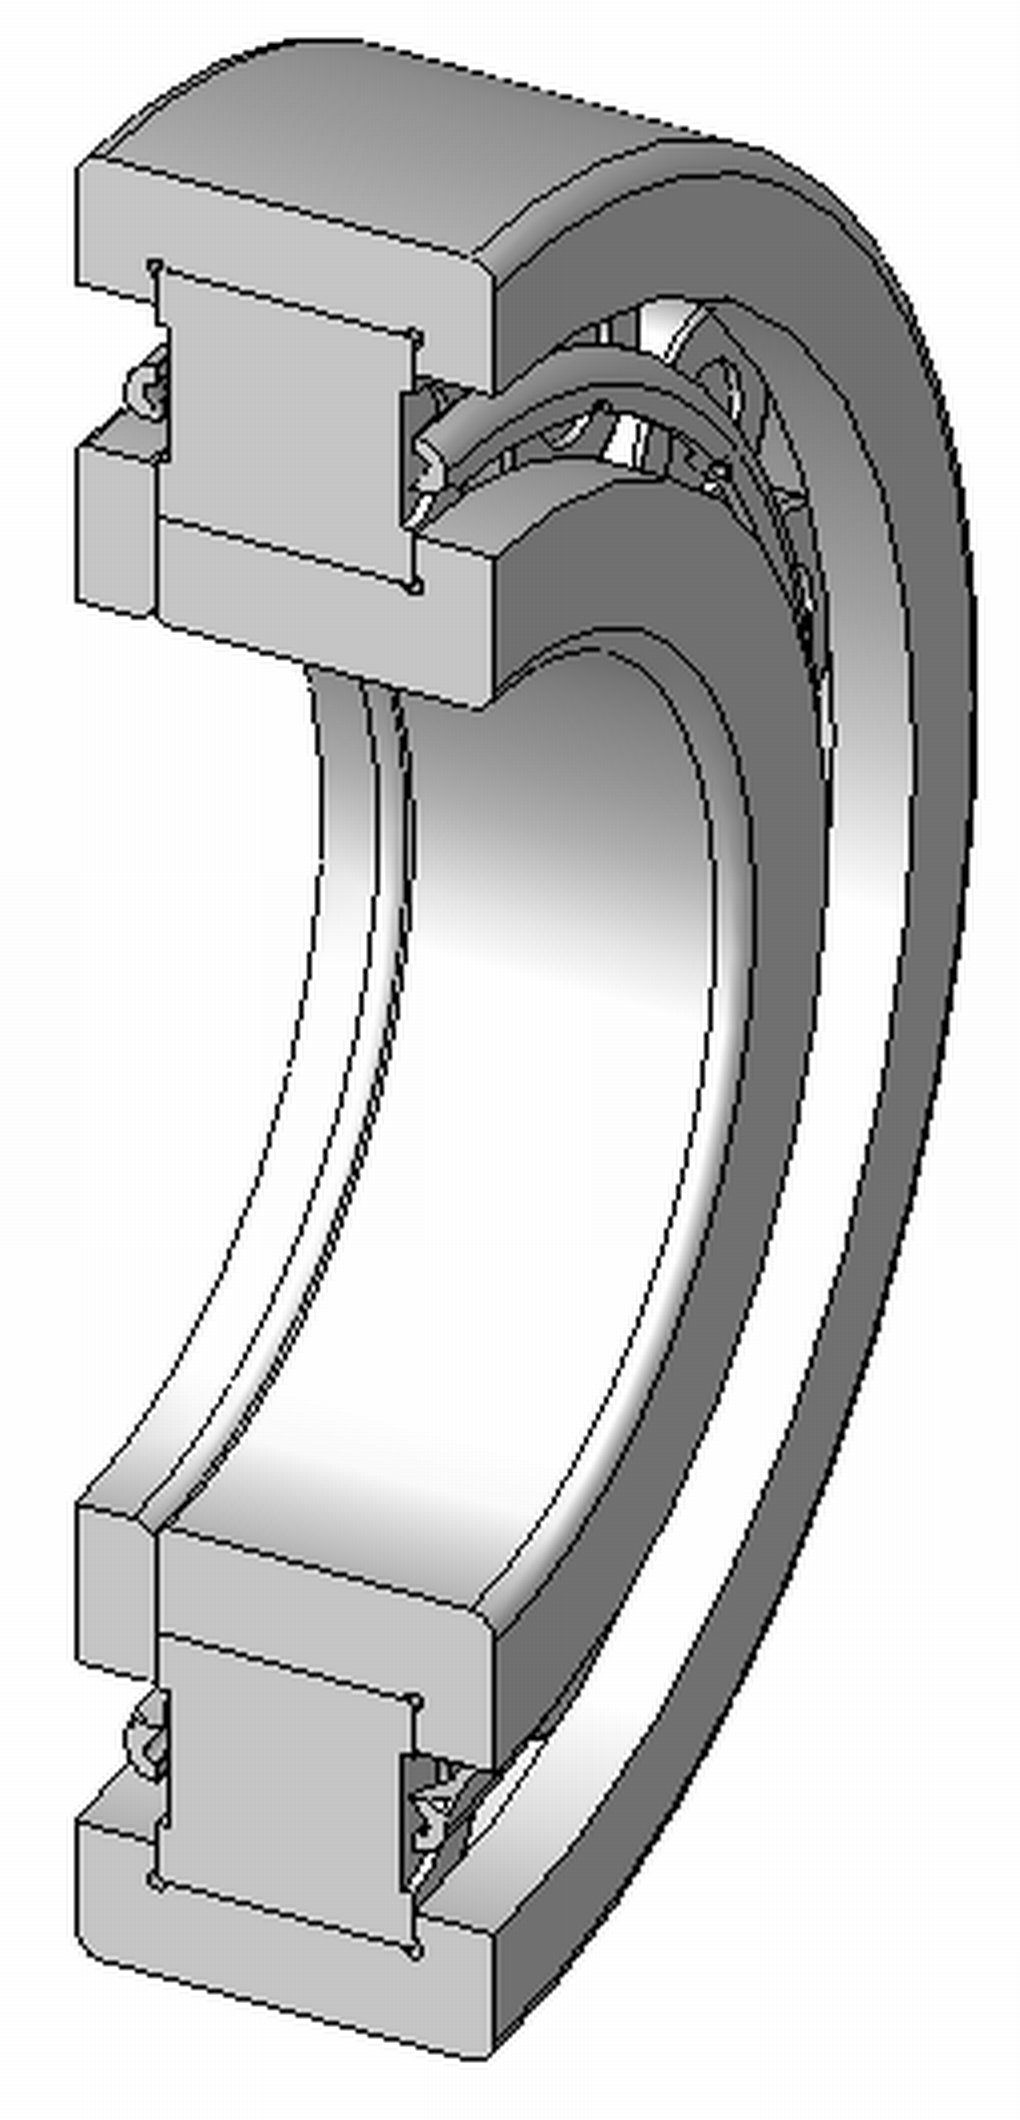 Description Cylindrical-roller-bearing din5412-t1 type-nup 180.png: http://commons.wikimedia.org/wiki/File:Cylindrical-roller-bearing_din5412-t1_type-nup_180.png